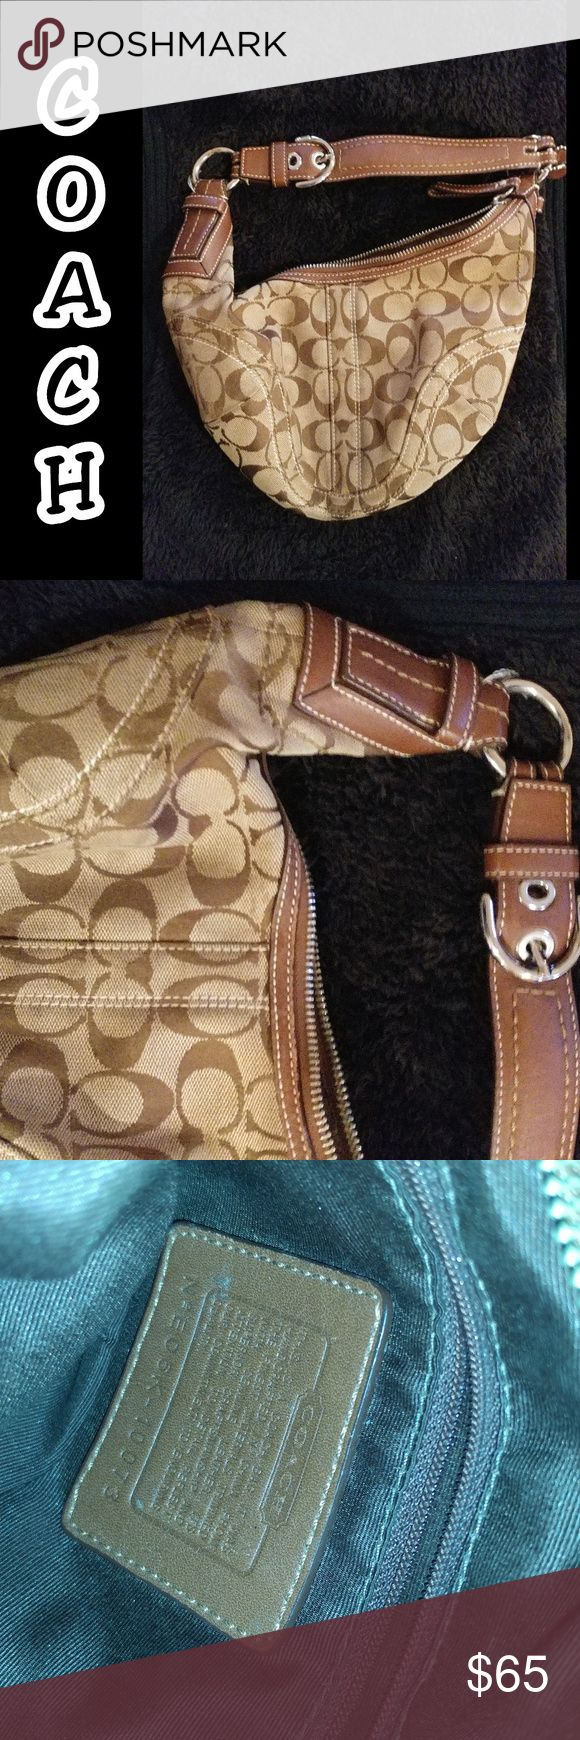 Coach purse Coach purse. One loose string posted in pic above on ring. Message me for more detail or offers. Thank you for looking #coach #coachpurse #coachbag #brown #lightbrown #used #auntethic #pretty Coach Bags